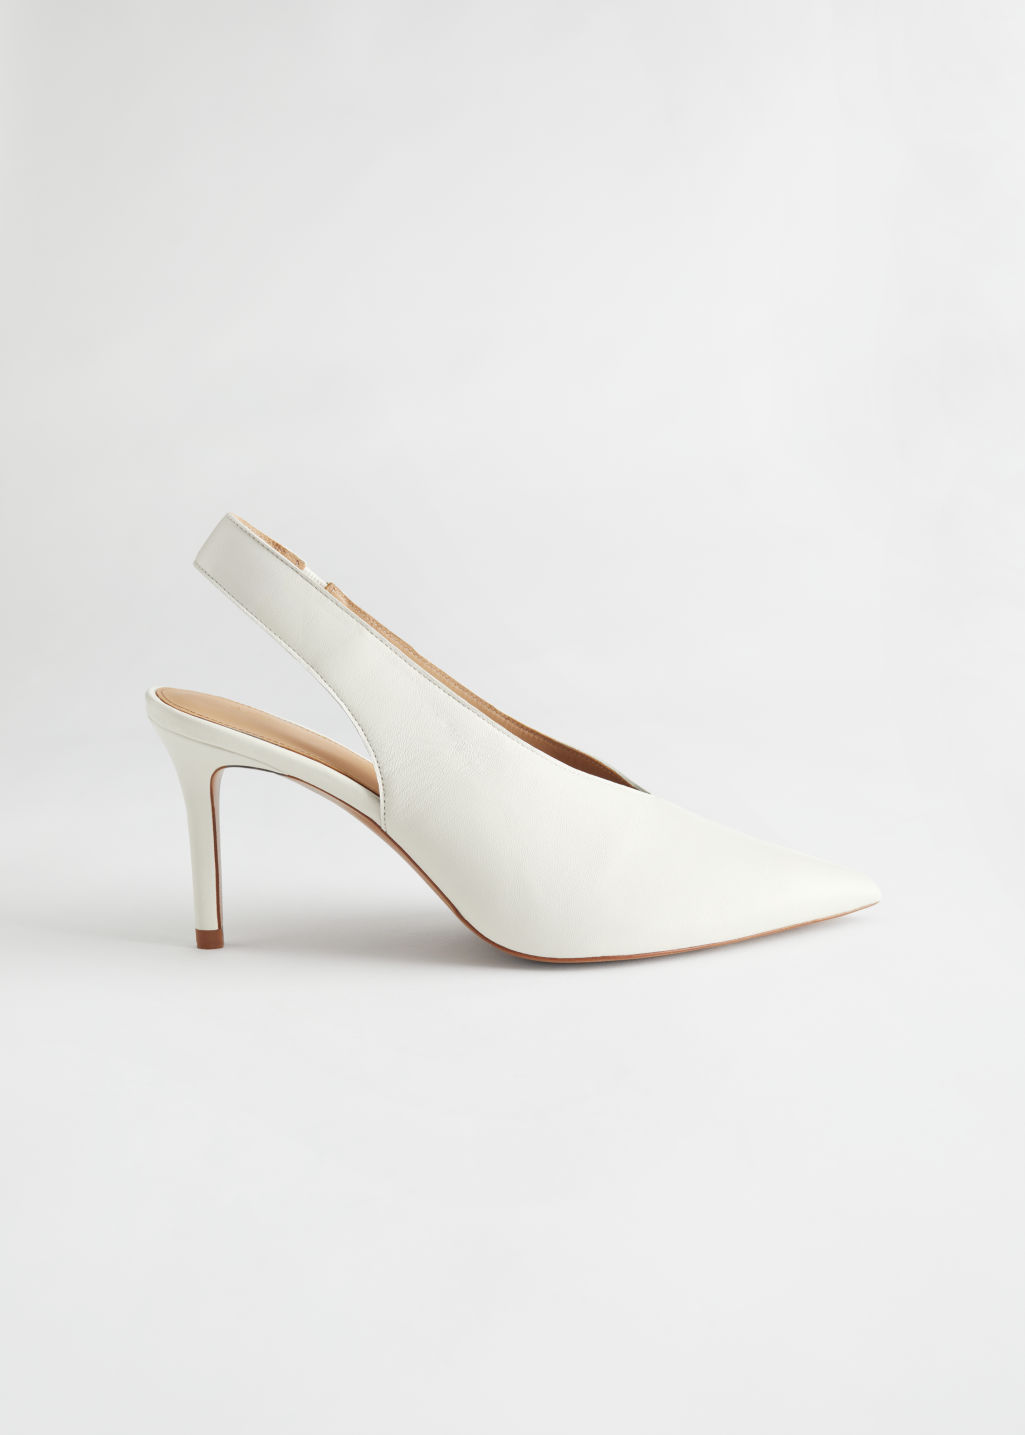 StillLife Side Image of Stories Pointed Leather Slingback Pumps in White